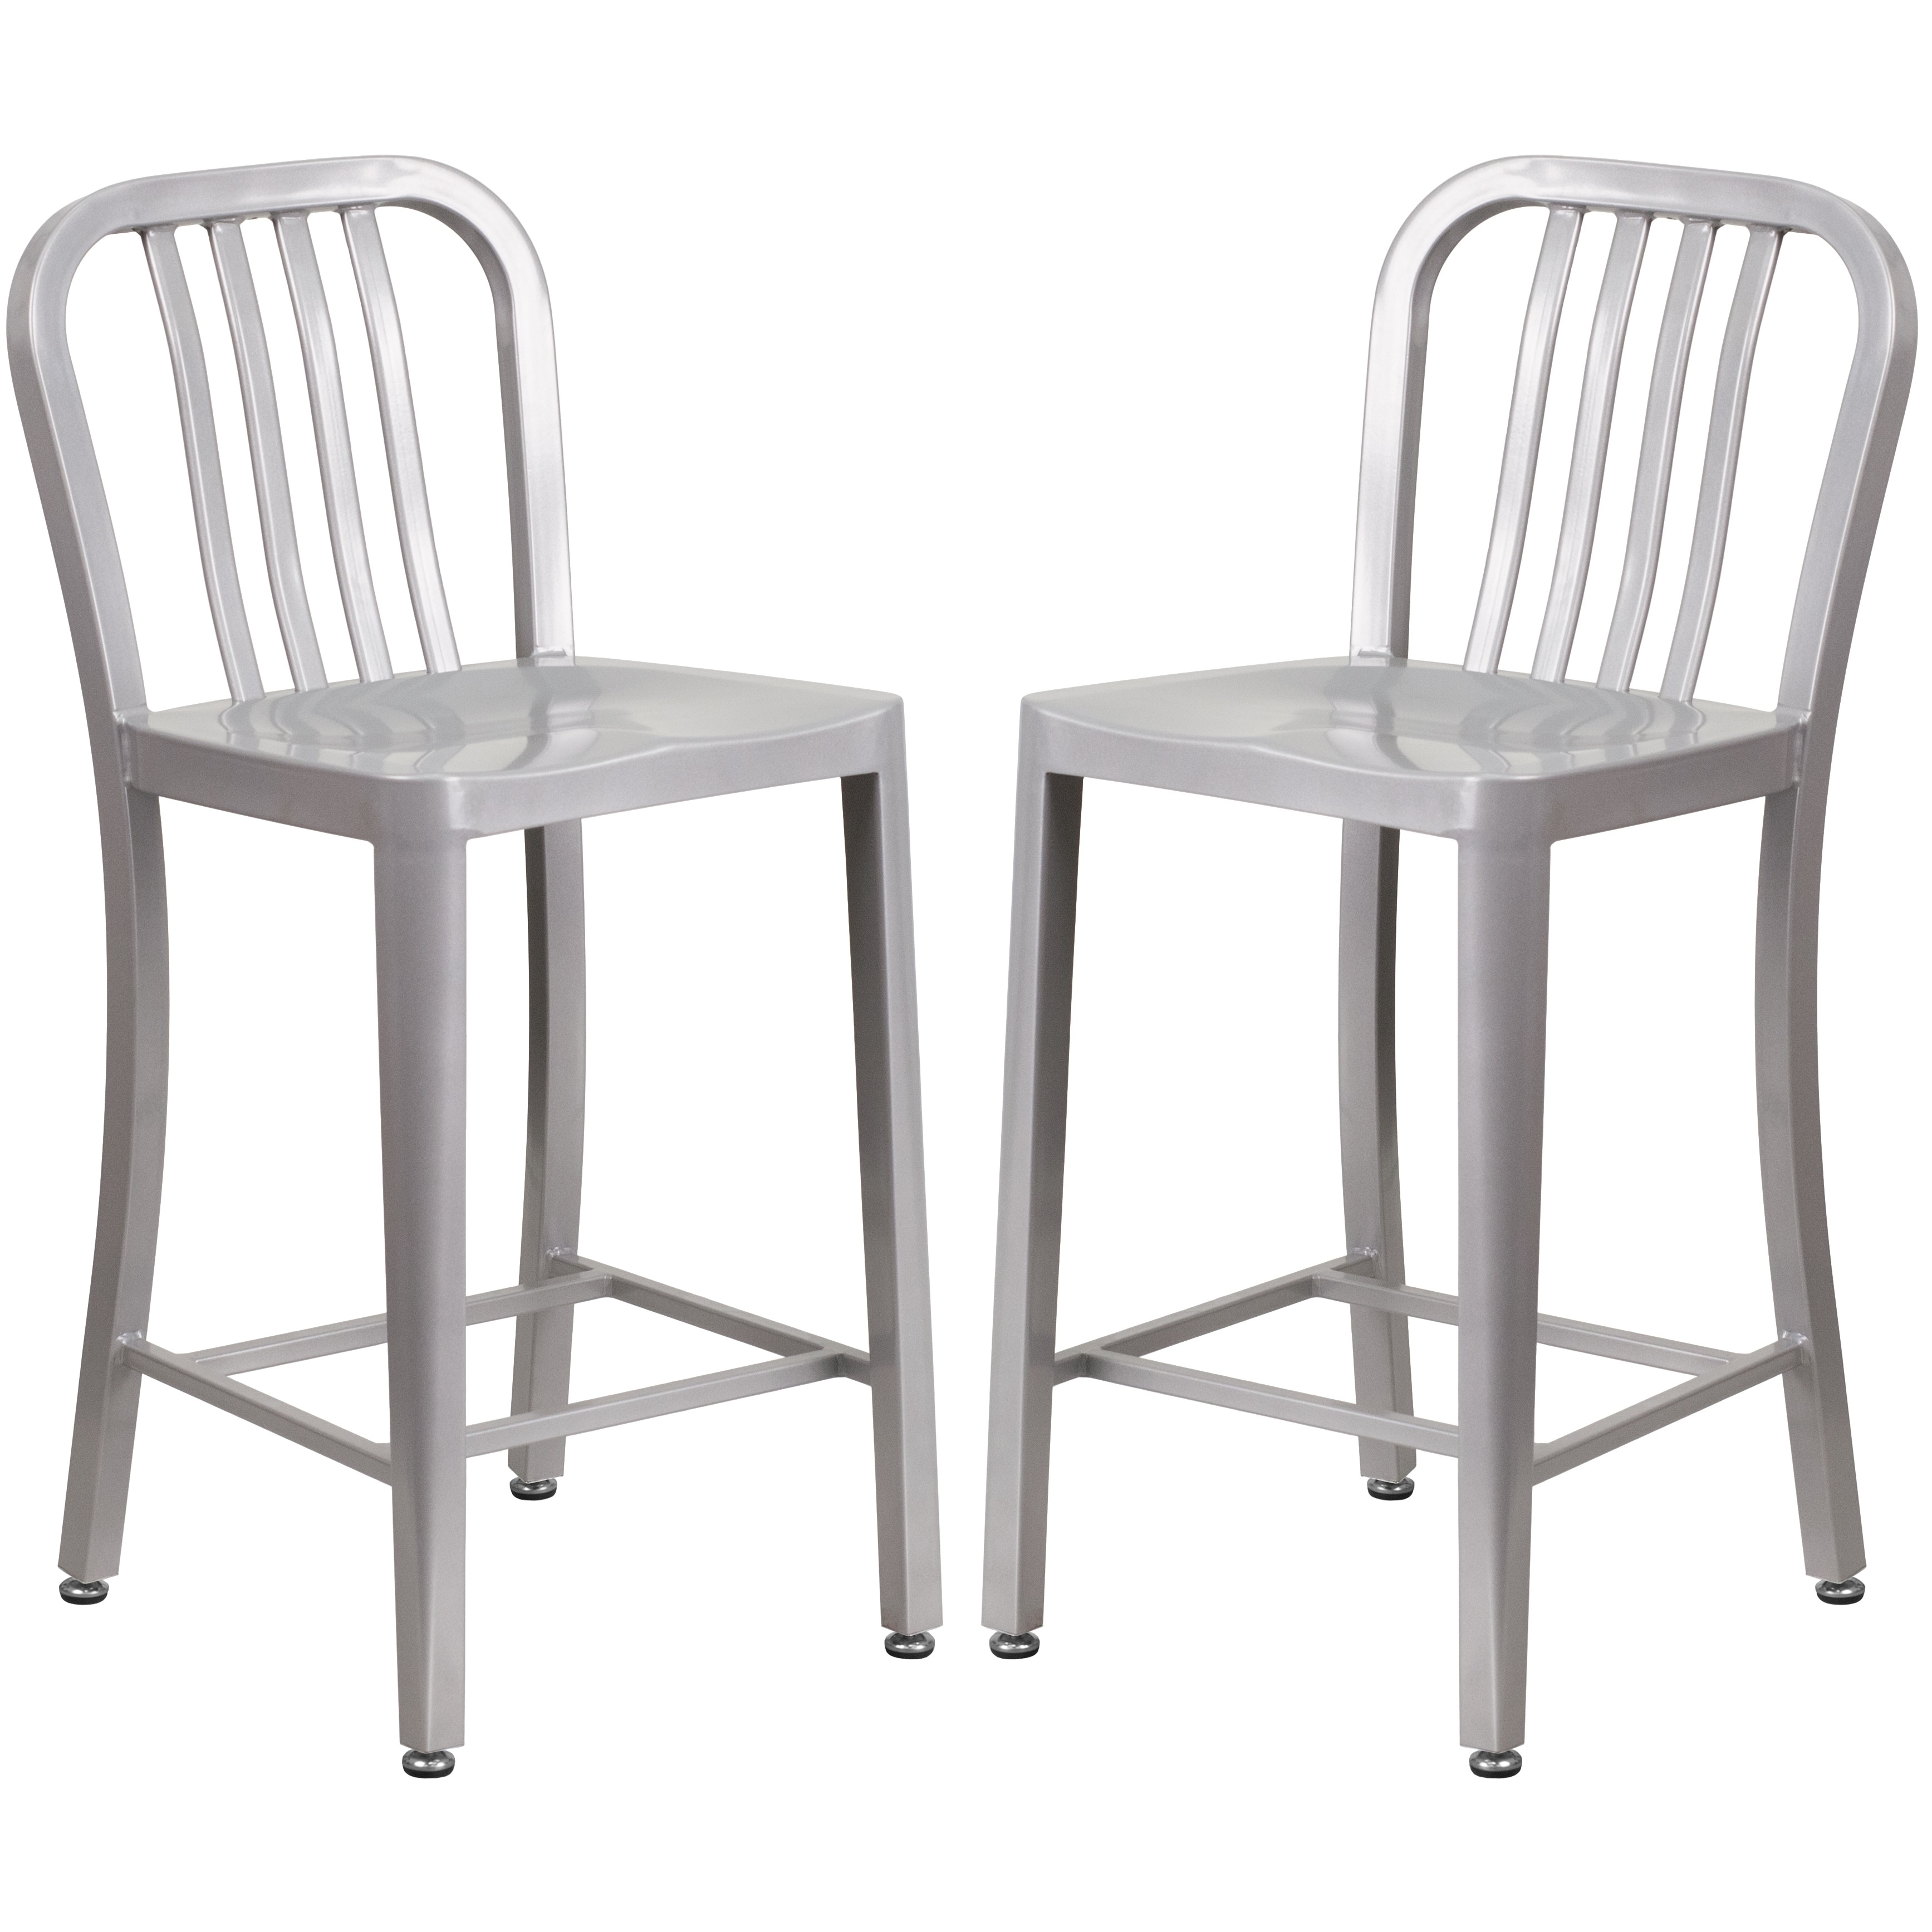 Veronica Slat Back Design Silver Metal Counter Stools Free Shipping Today 16958256